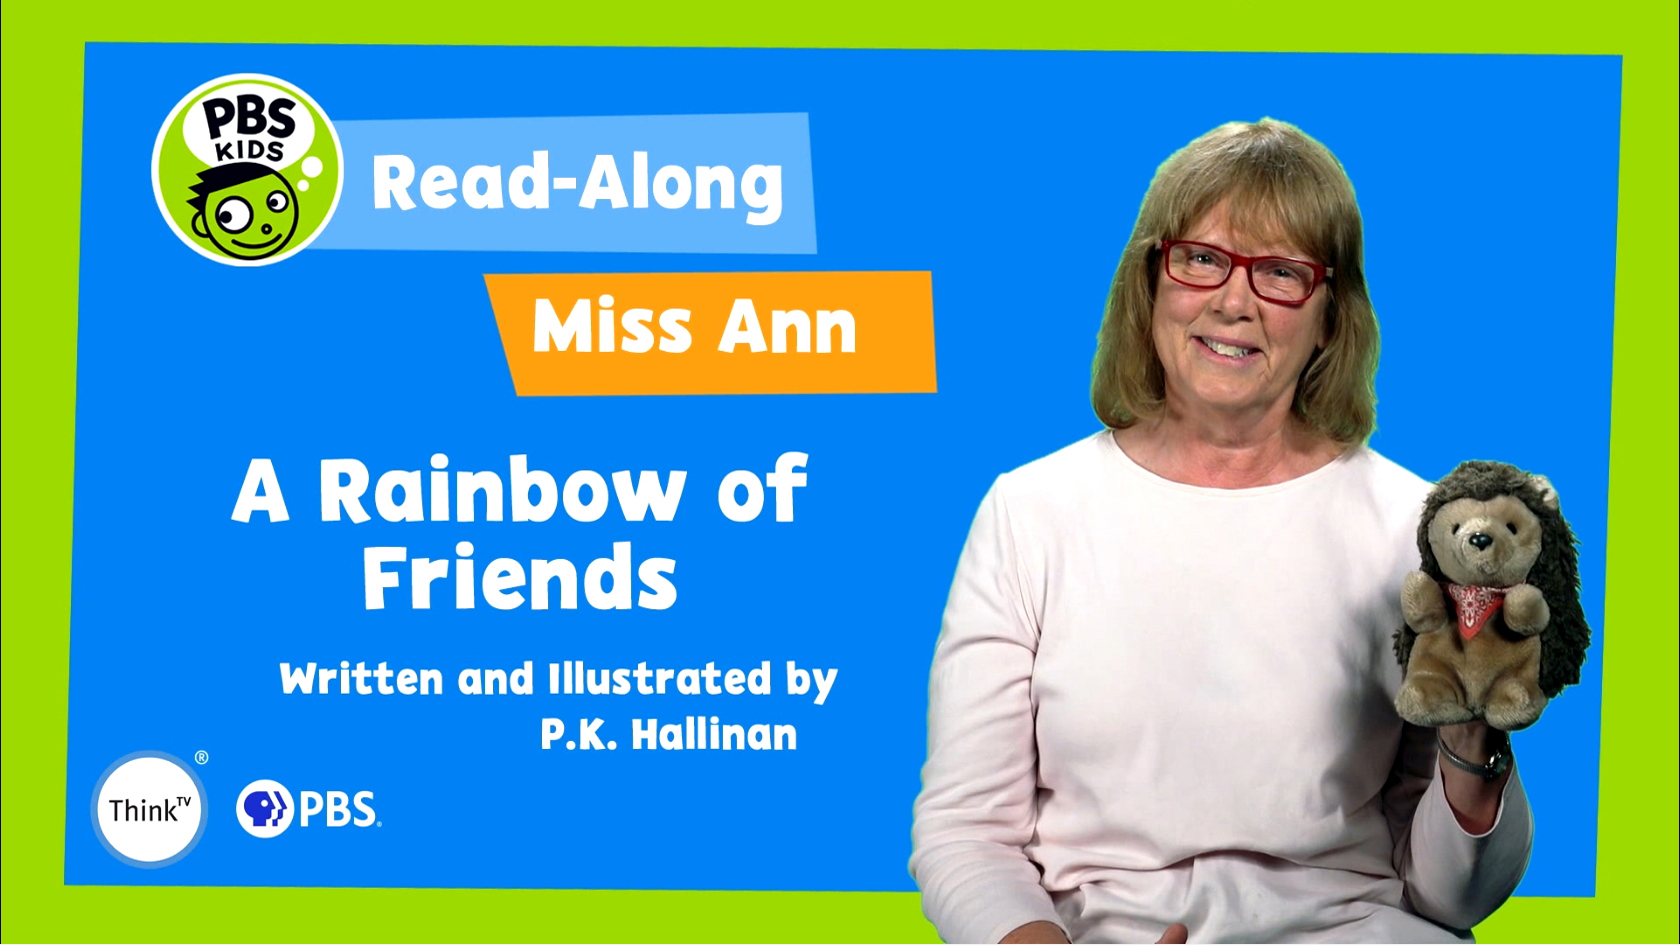 Read-Along with Miss Ann: A Rainbow of Friends